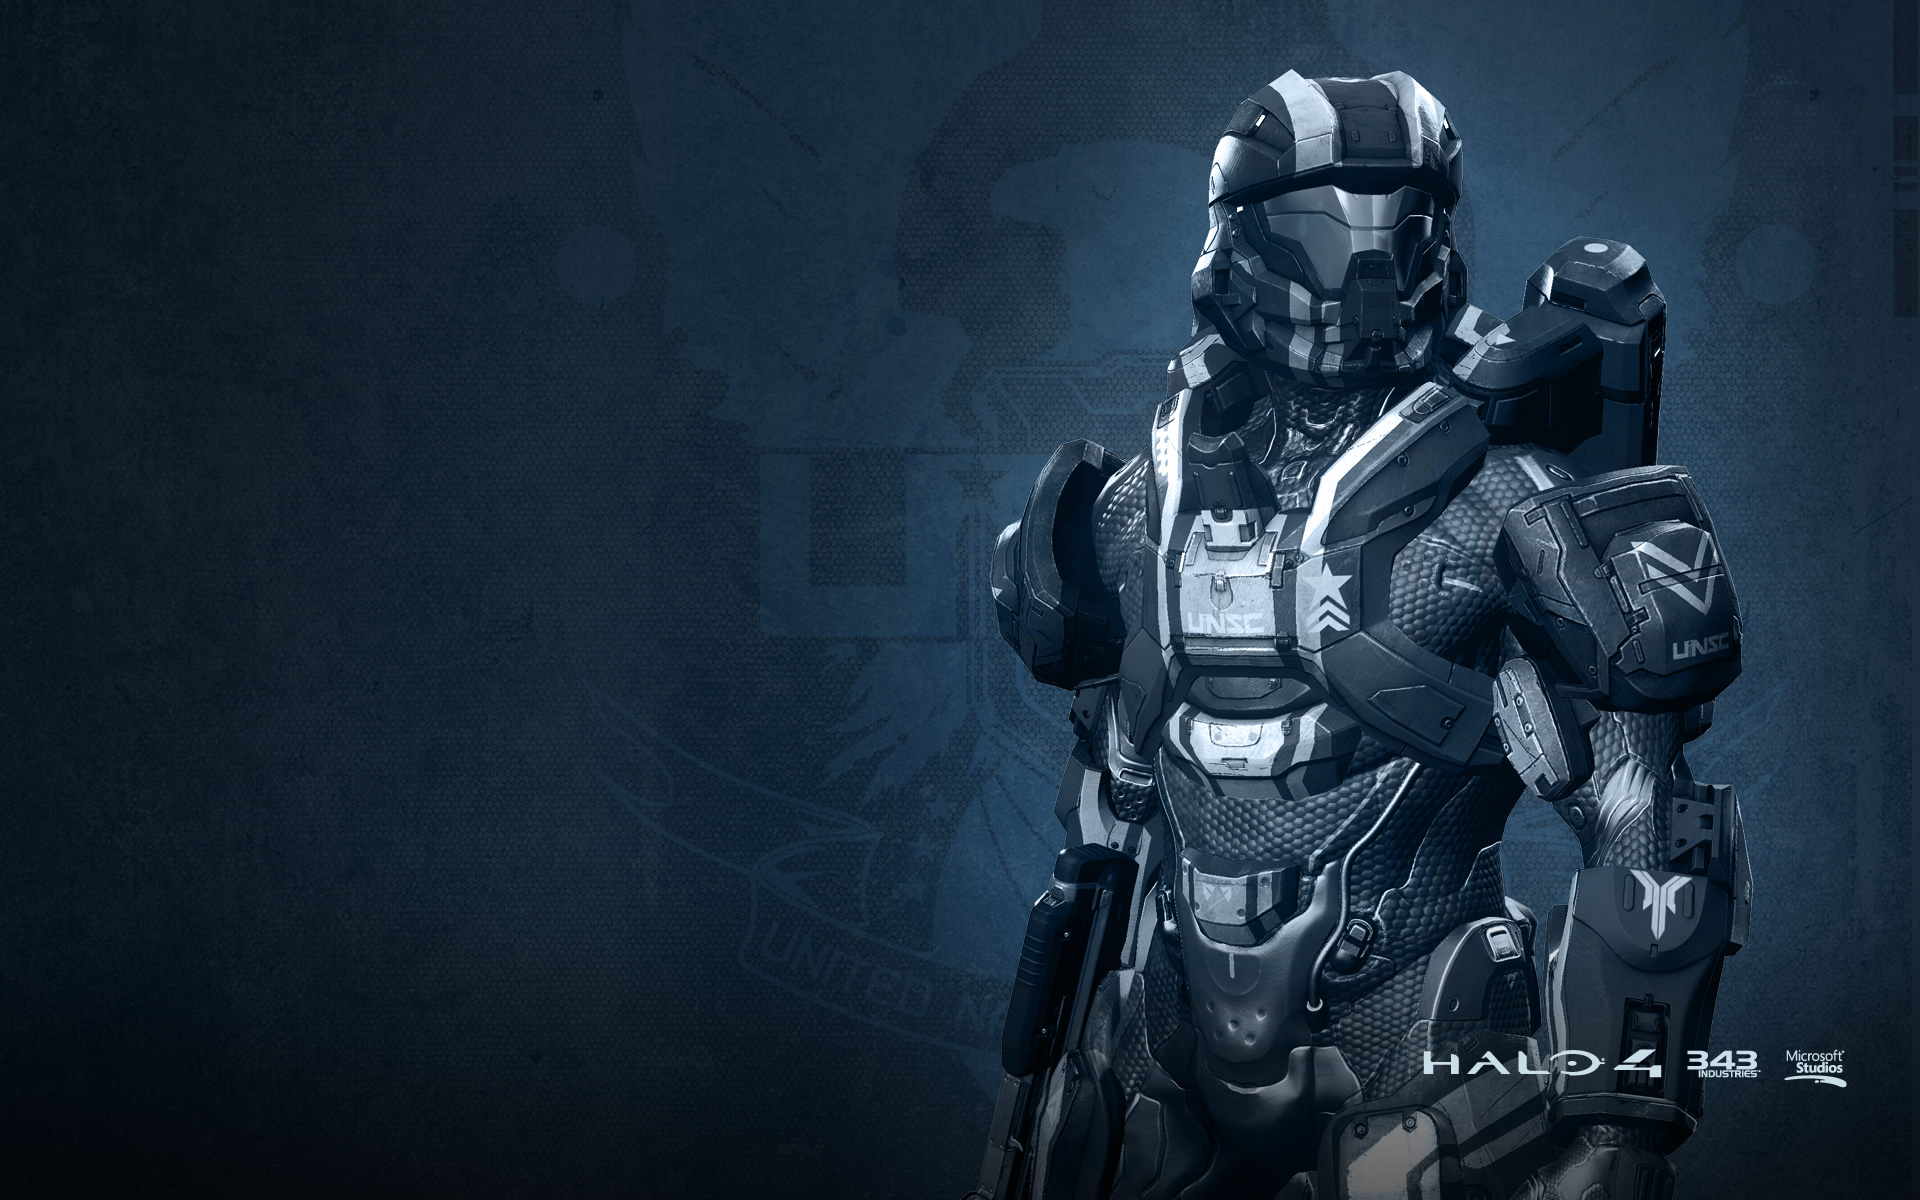 Halo 4 wallpapers 6 HD Wallpapers 1920x1200